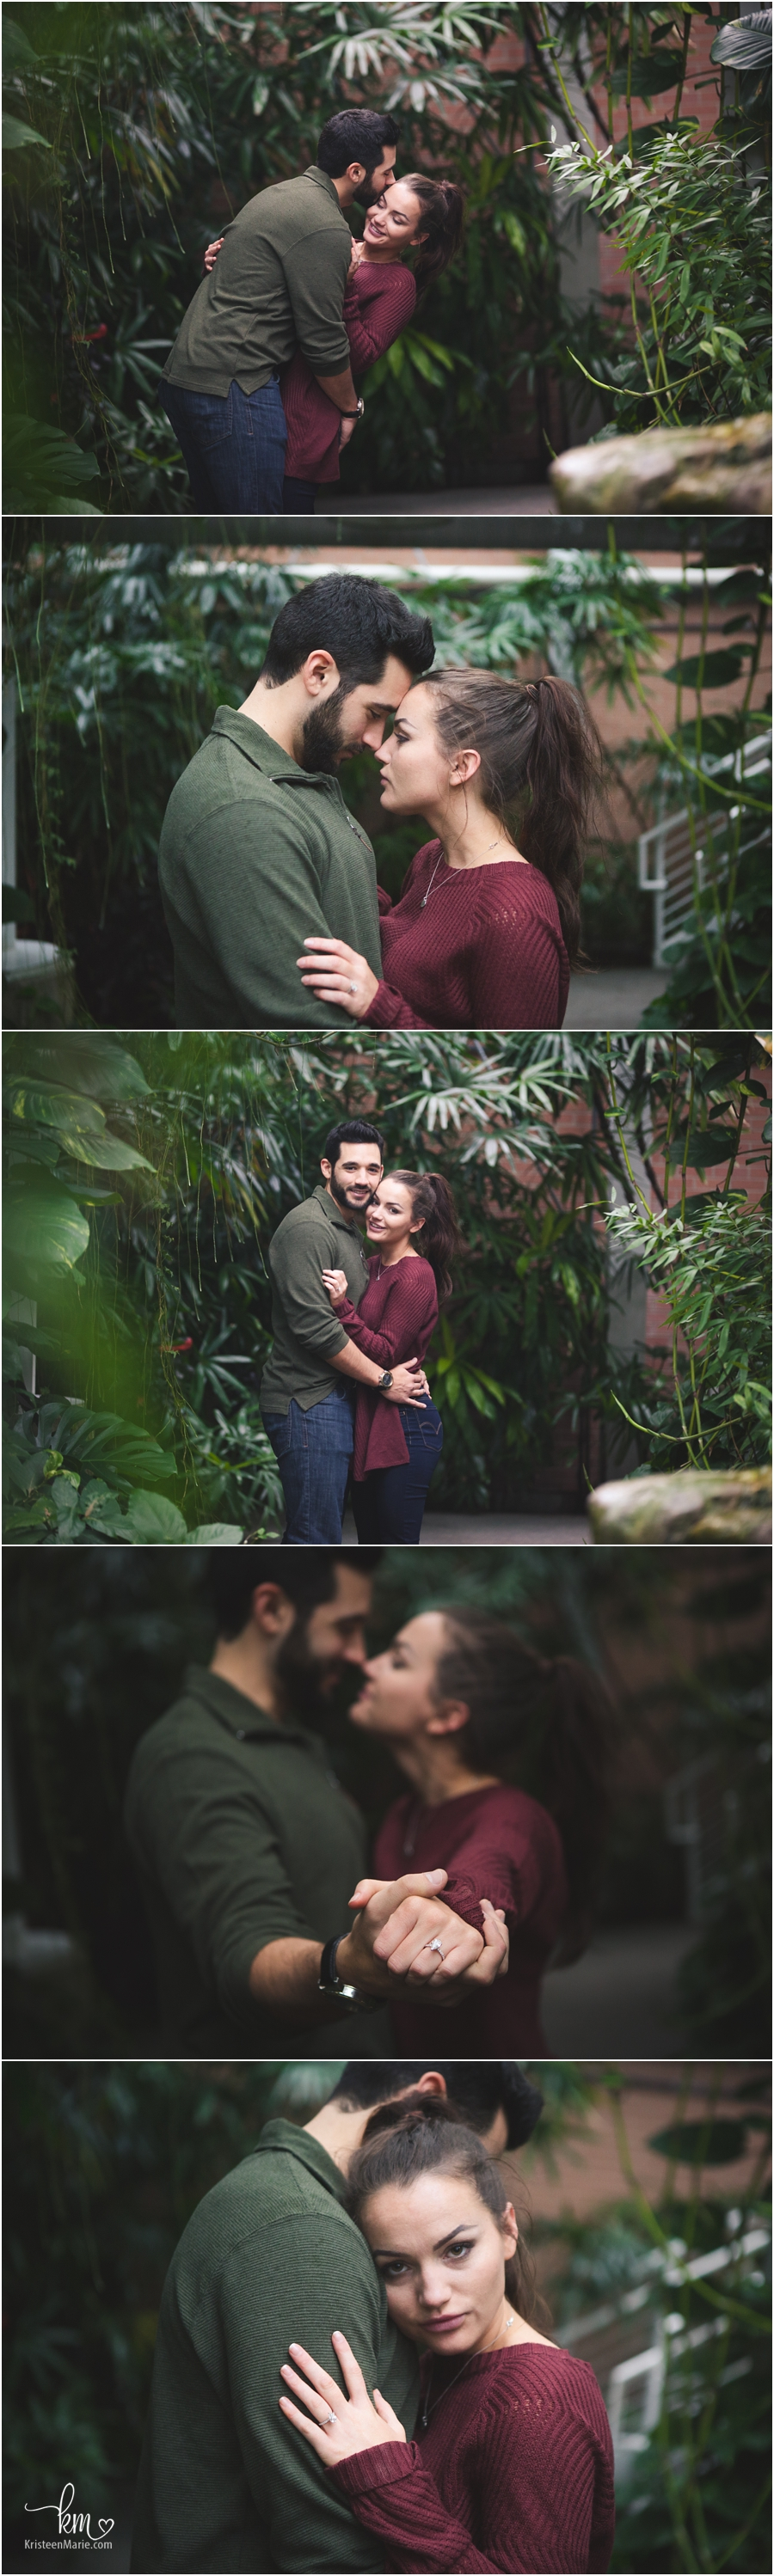 stunning couple - engagment pictures in butterful gardens in Indianapolis Zoo